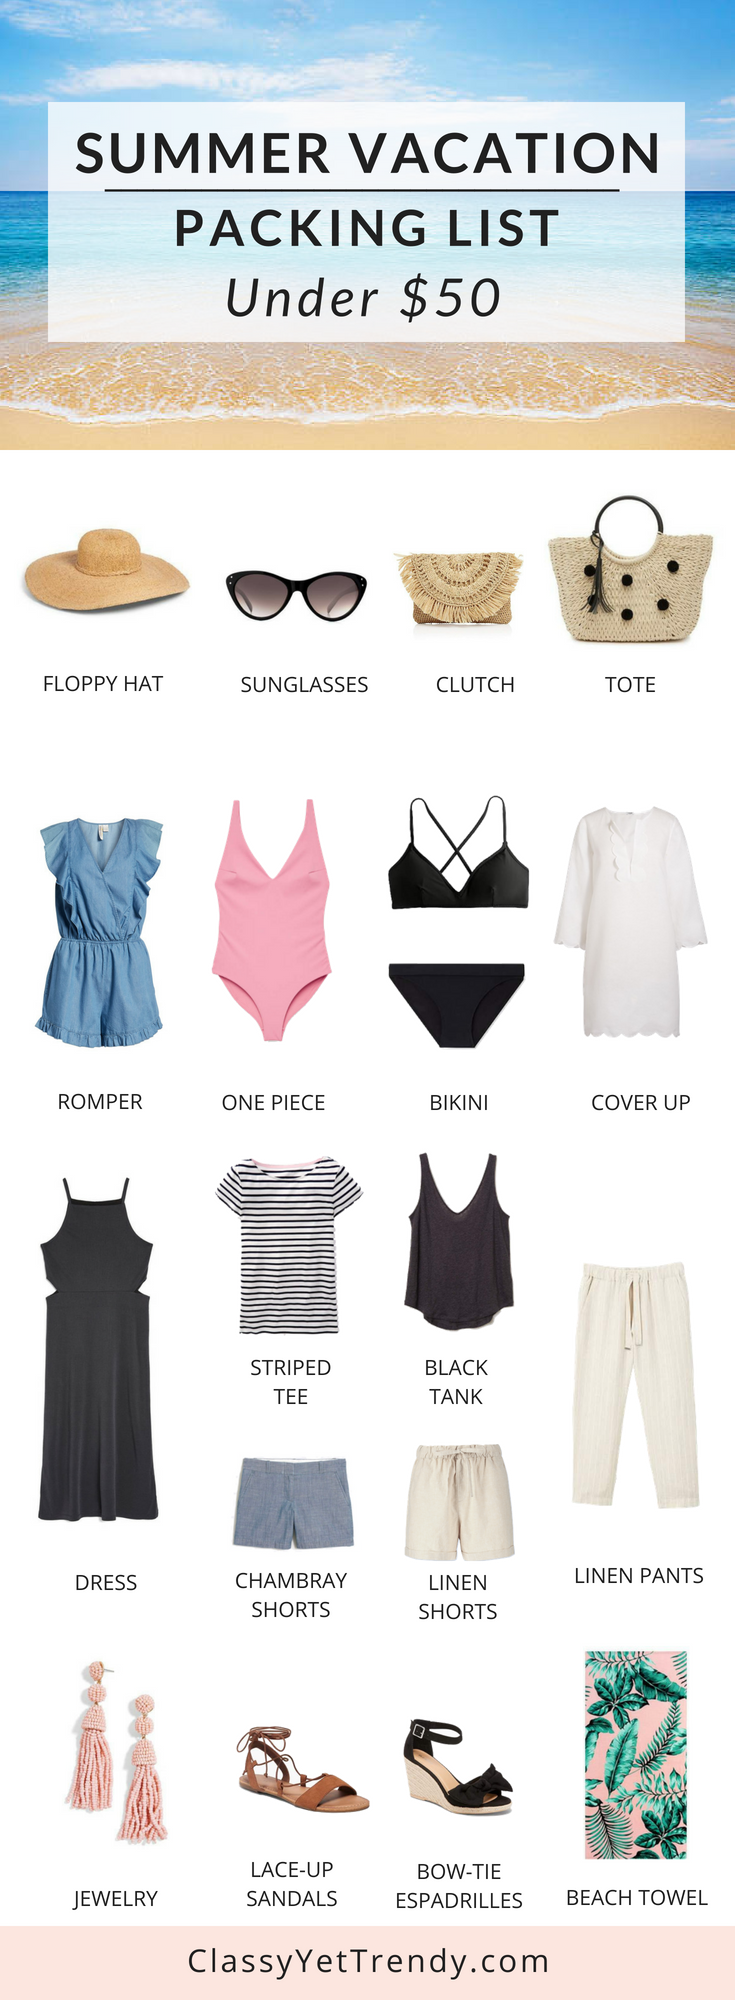 Summer Vacation Packing List On a Budget Under $50